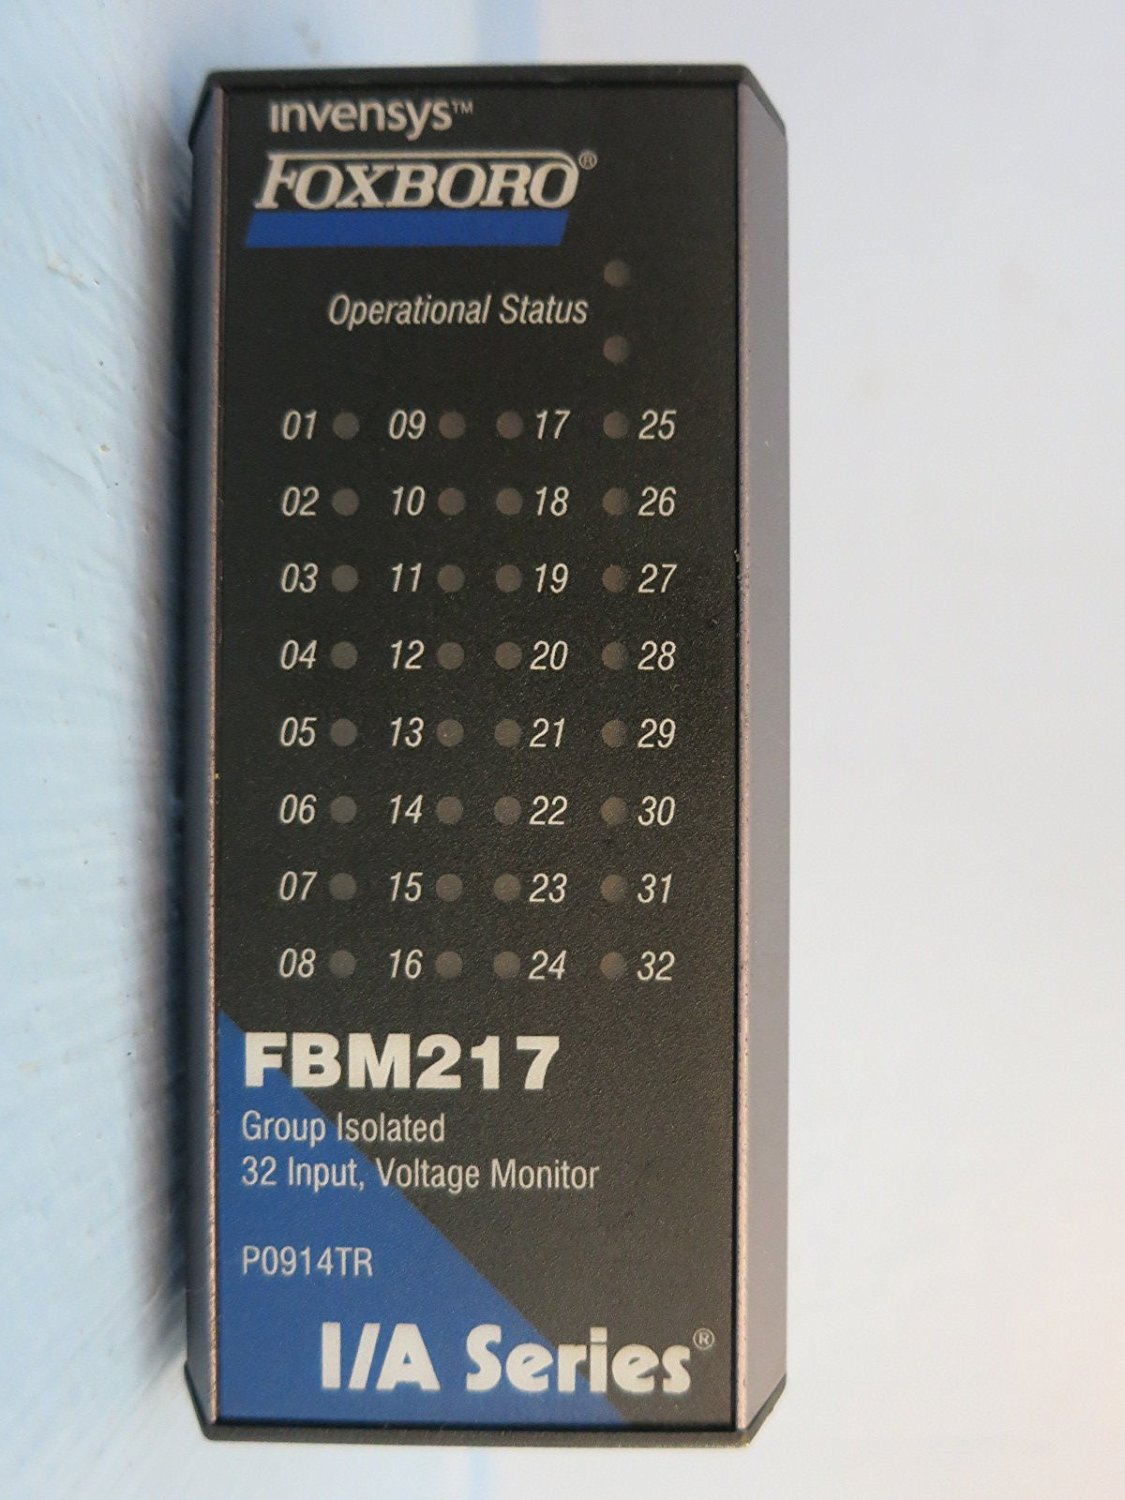 FOXBORO FBMSVH power amplifier card